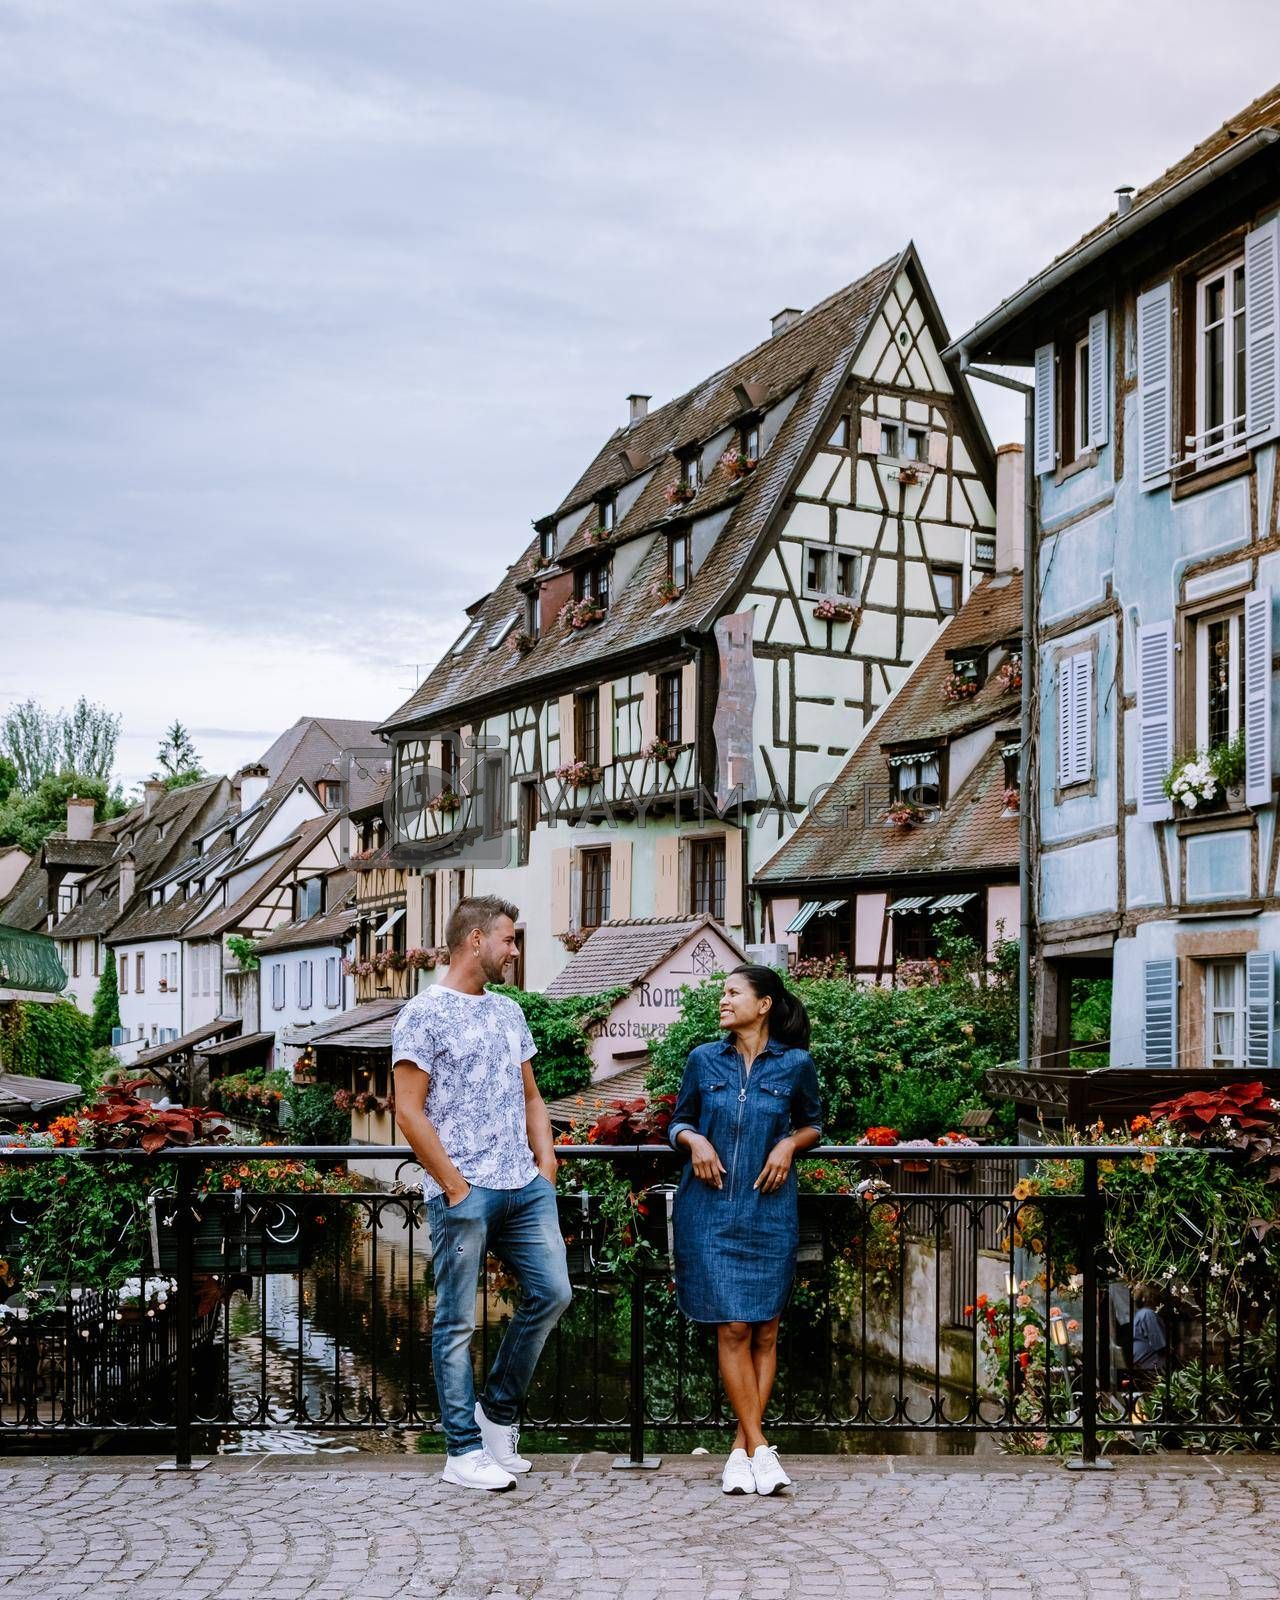 Royalty free image of couple on city trip Colmar, Alsace, France. Petite Venice, water canal and traditional half timbered houses. Colmar is a charming town in Alsace, France. Beautiful view of colorful romantic city Colmar, France, Alsace by fokkebok